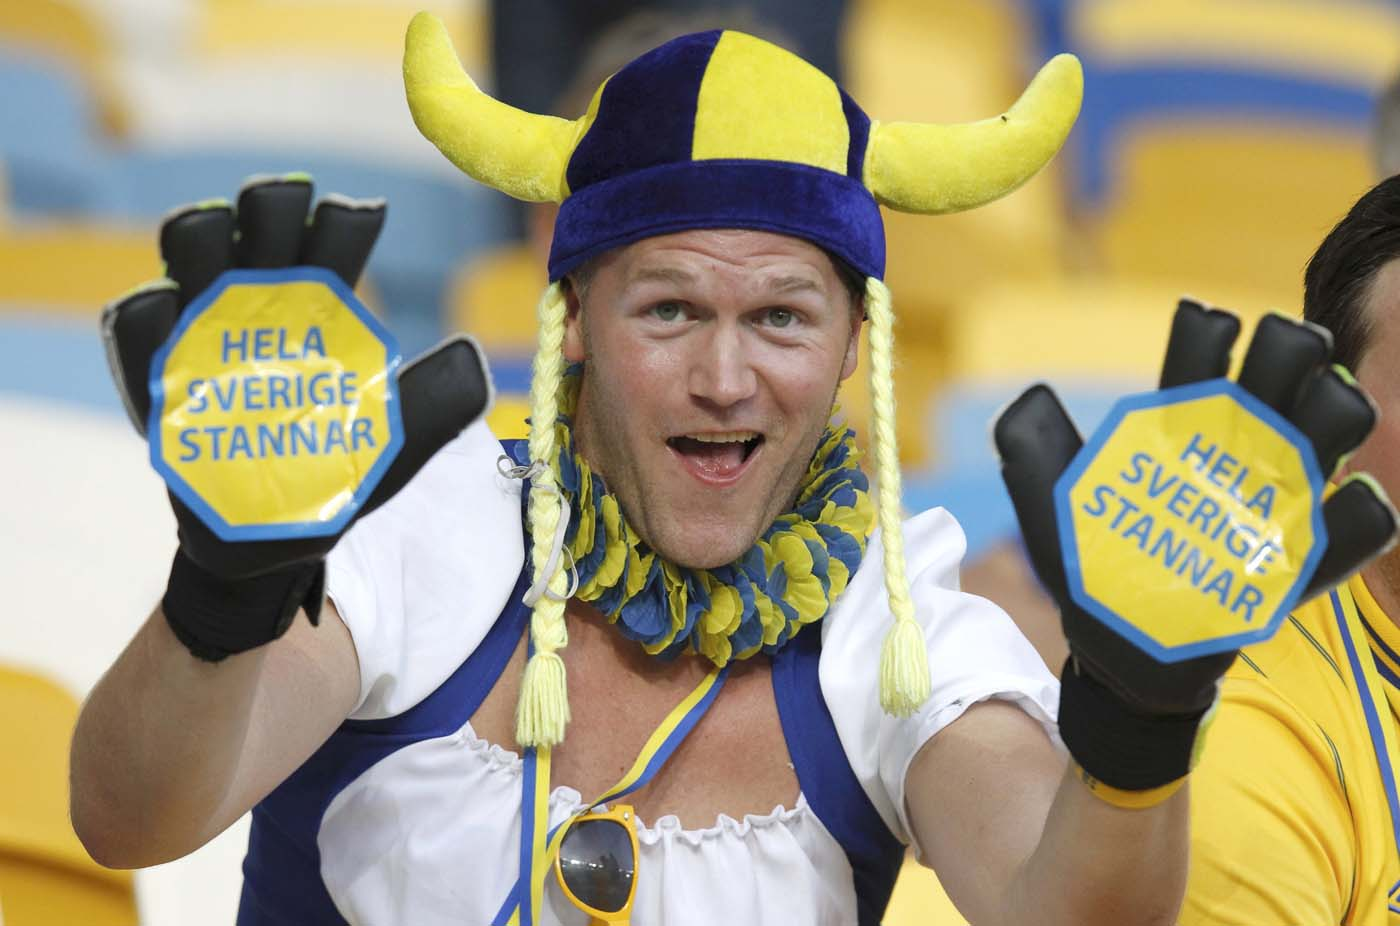 Sweden's soccer fan cheers before their Group D Euro 2012 soccer match against Ukraine at the Olympic stadium in Kiev, June 11, 2012. (Alexander Demianchuk/Reuters)